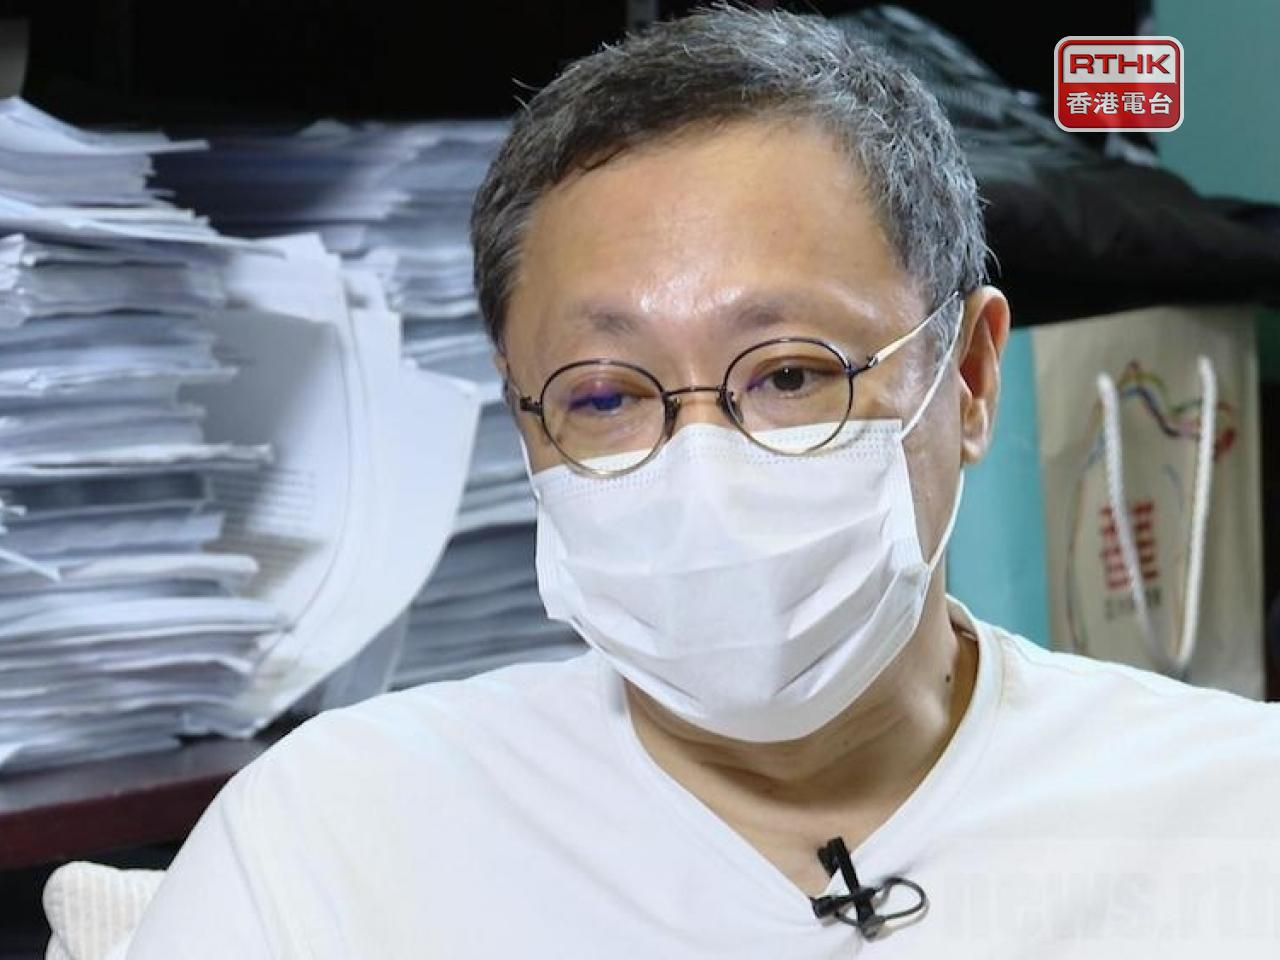 Benny Tai is among three people accused of violating election laws over the 2016 Legco polls. File photo: RTHK